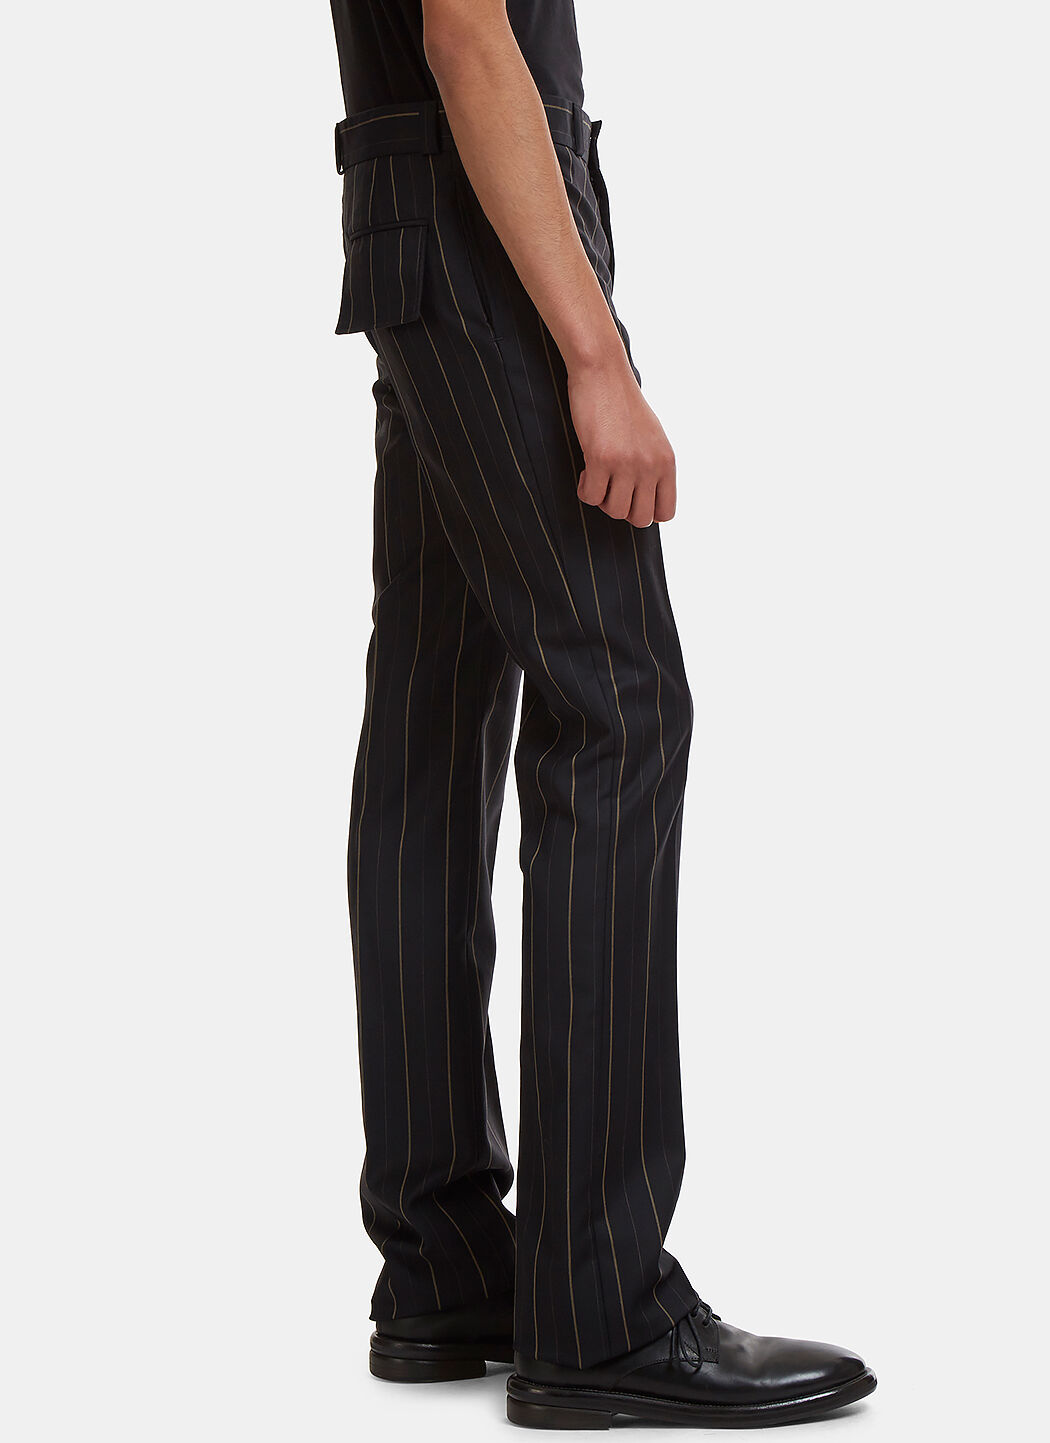 Beuys Tailored Striped Pants Wales Bonner 5Y7przQ